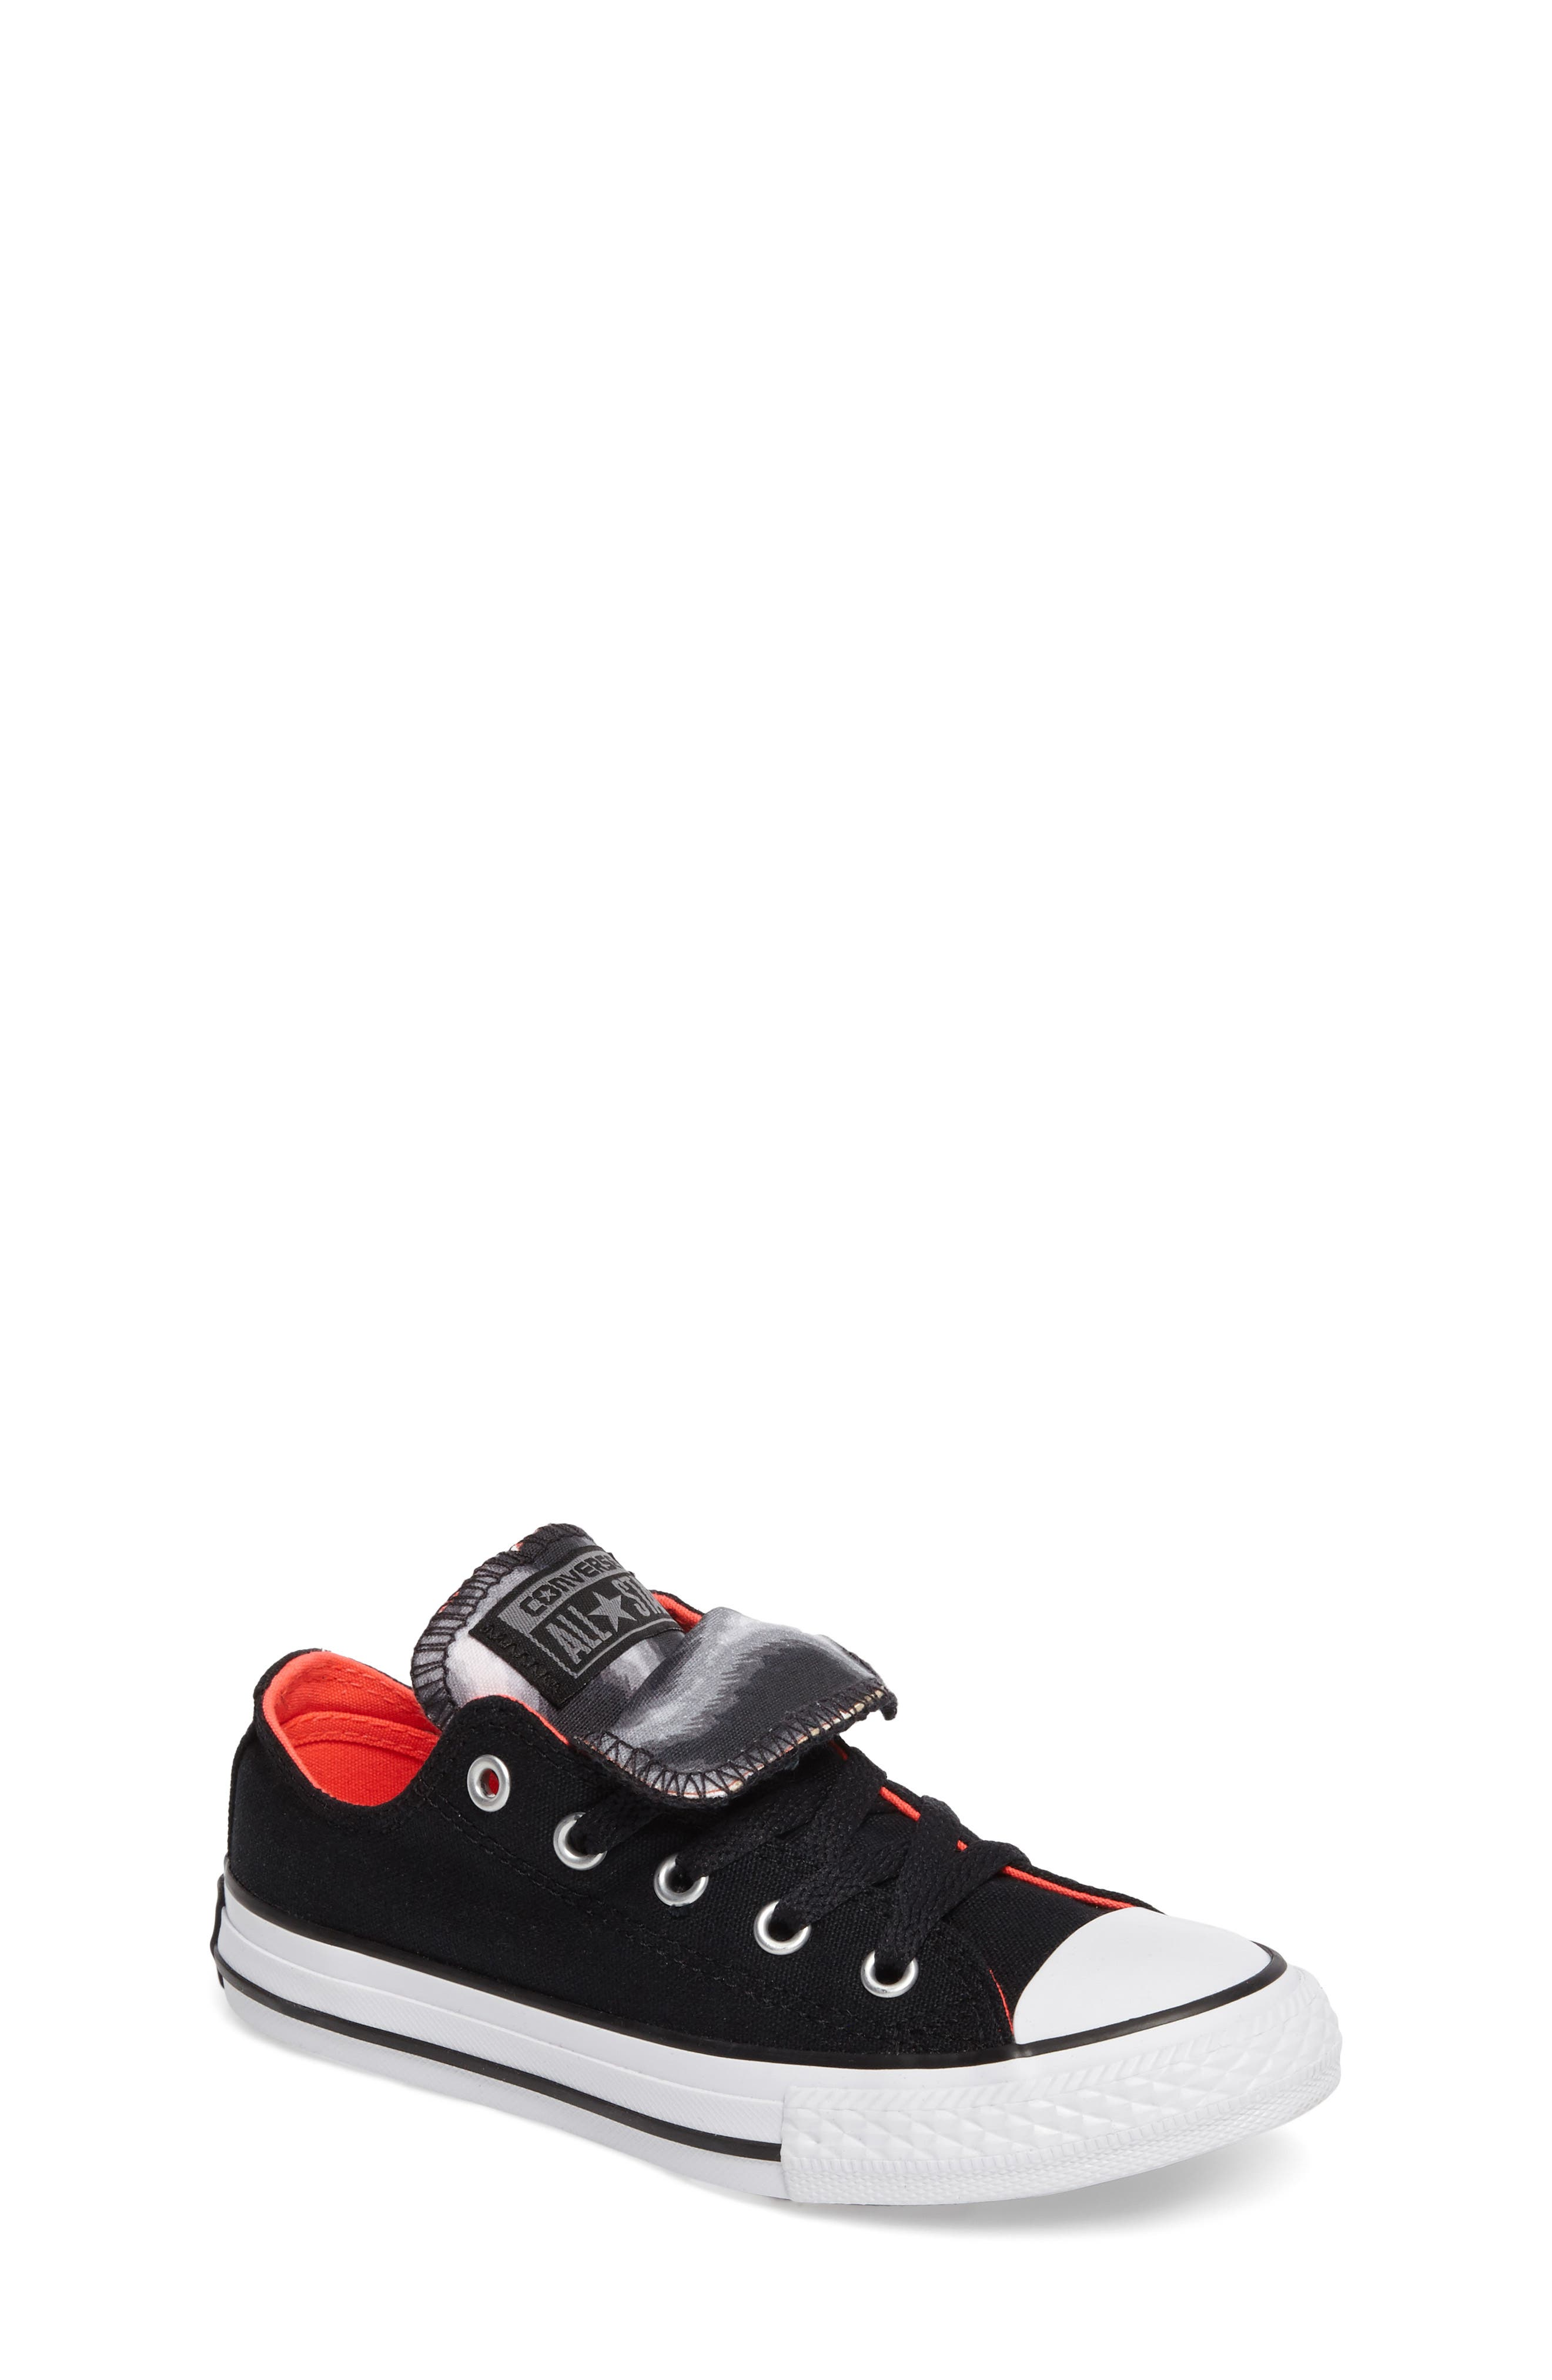 Main Image - Converse All Star® Double Tongue Sneaker (Toddler, Little Kid, Big Kid)